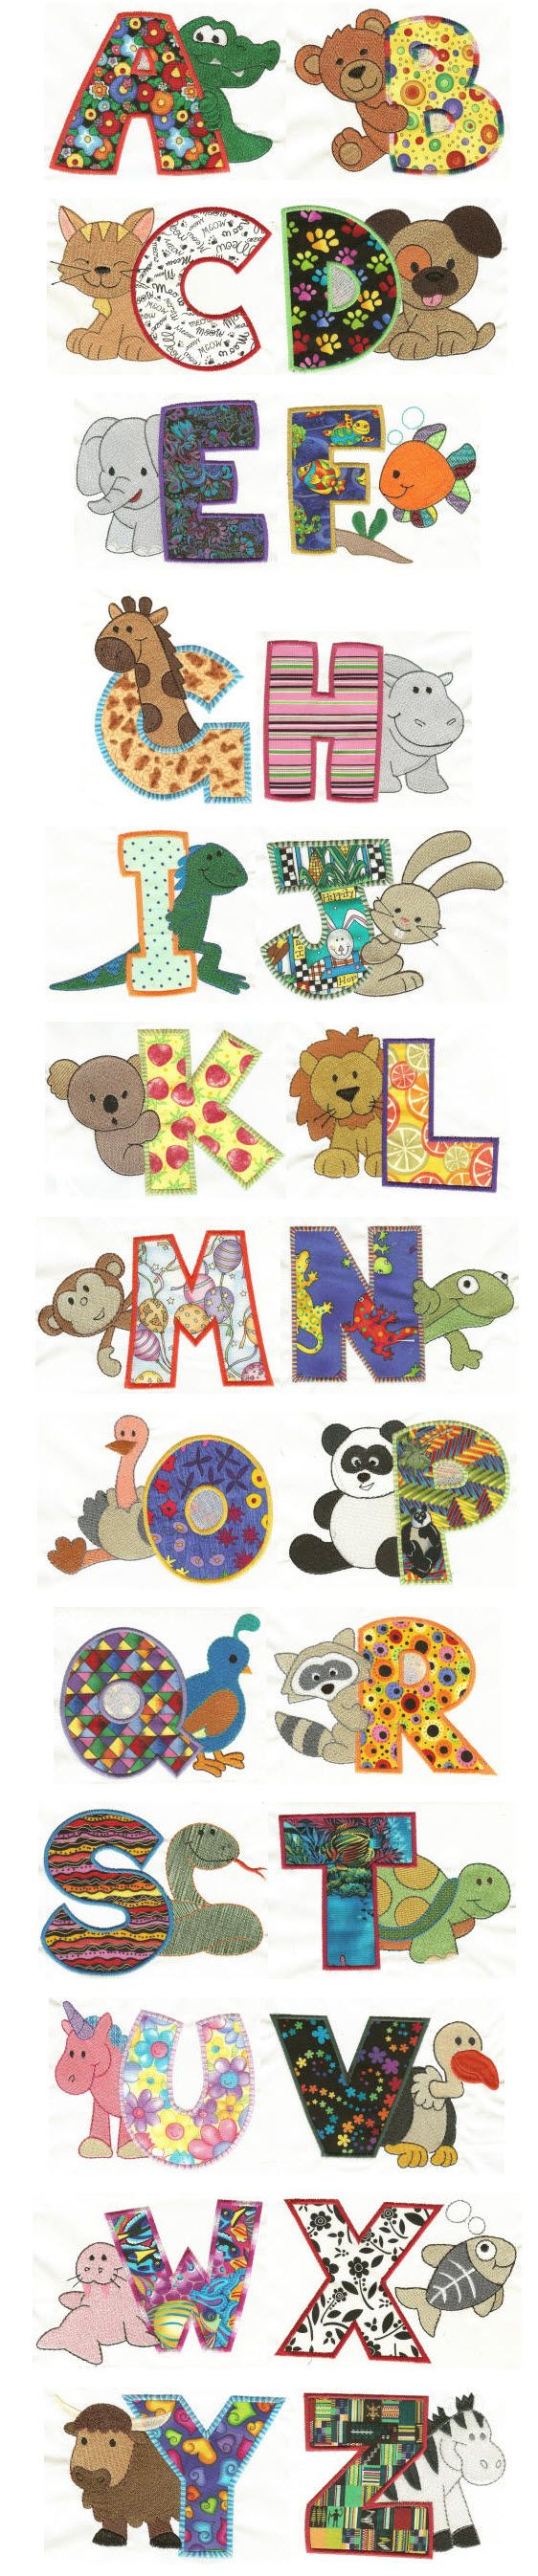 DesignsByJuJu Search DBJJ372 Cute Critters Applique Alphabet